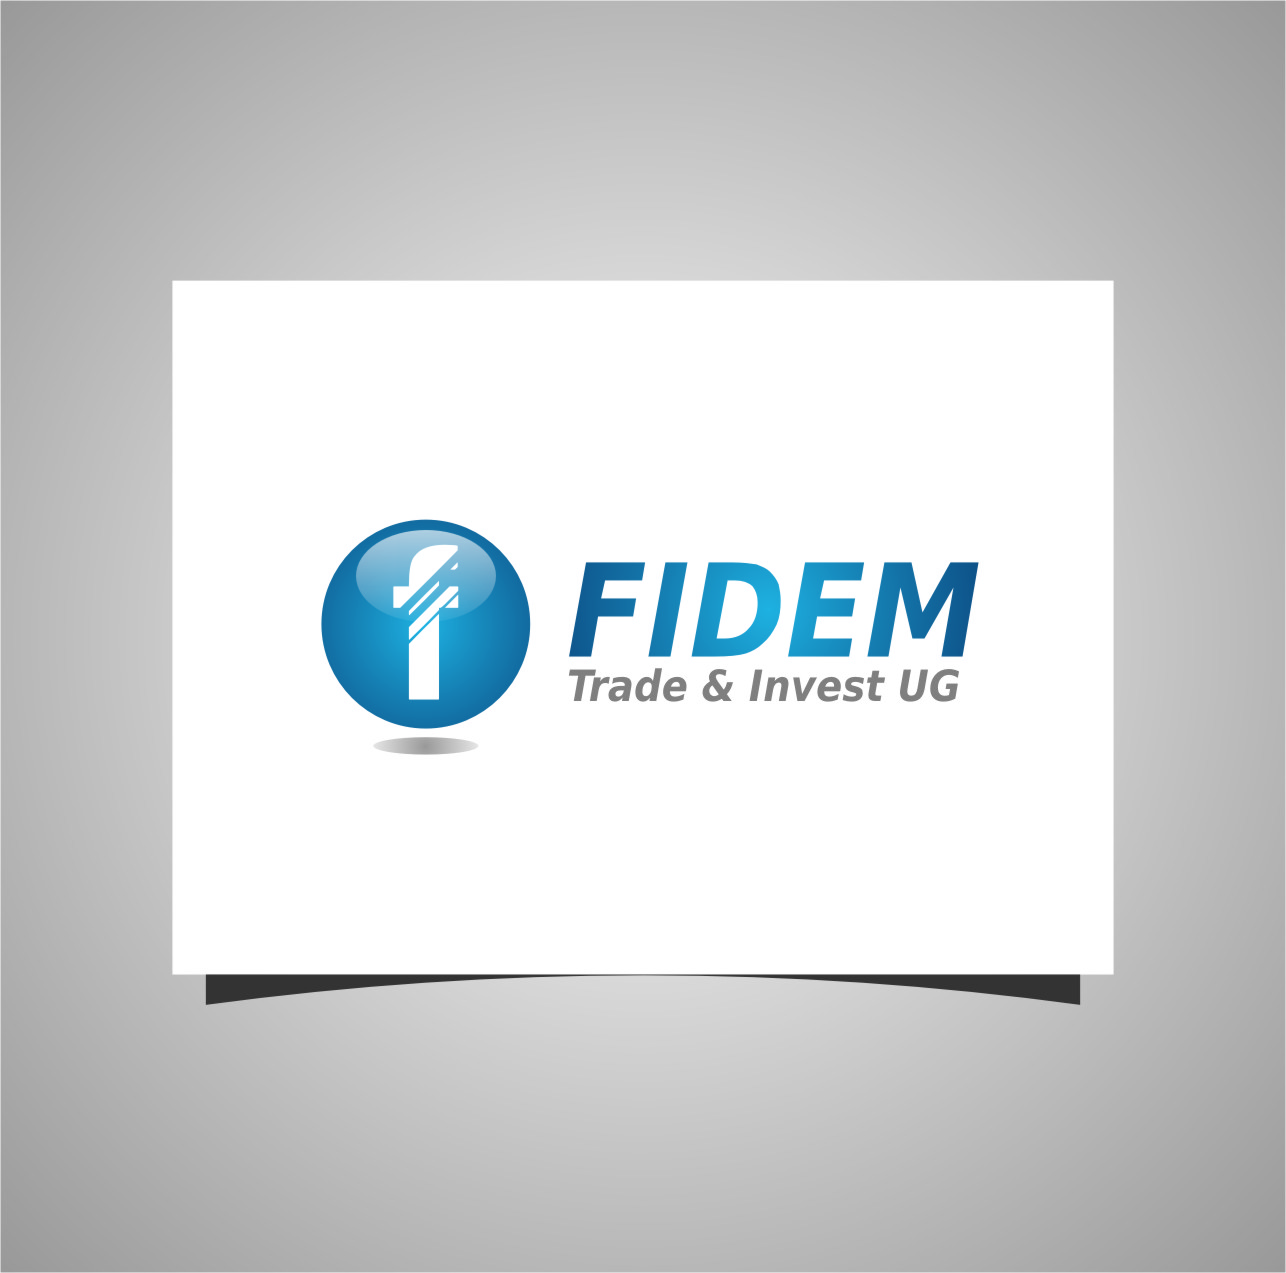 Logo Design by RasYa Muhammad Athaya - Entry No. 40 in the Logo Design Contest Professional Logo Design for FIDEM Trade & Invest UG.